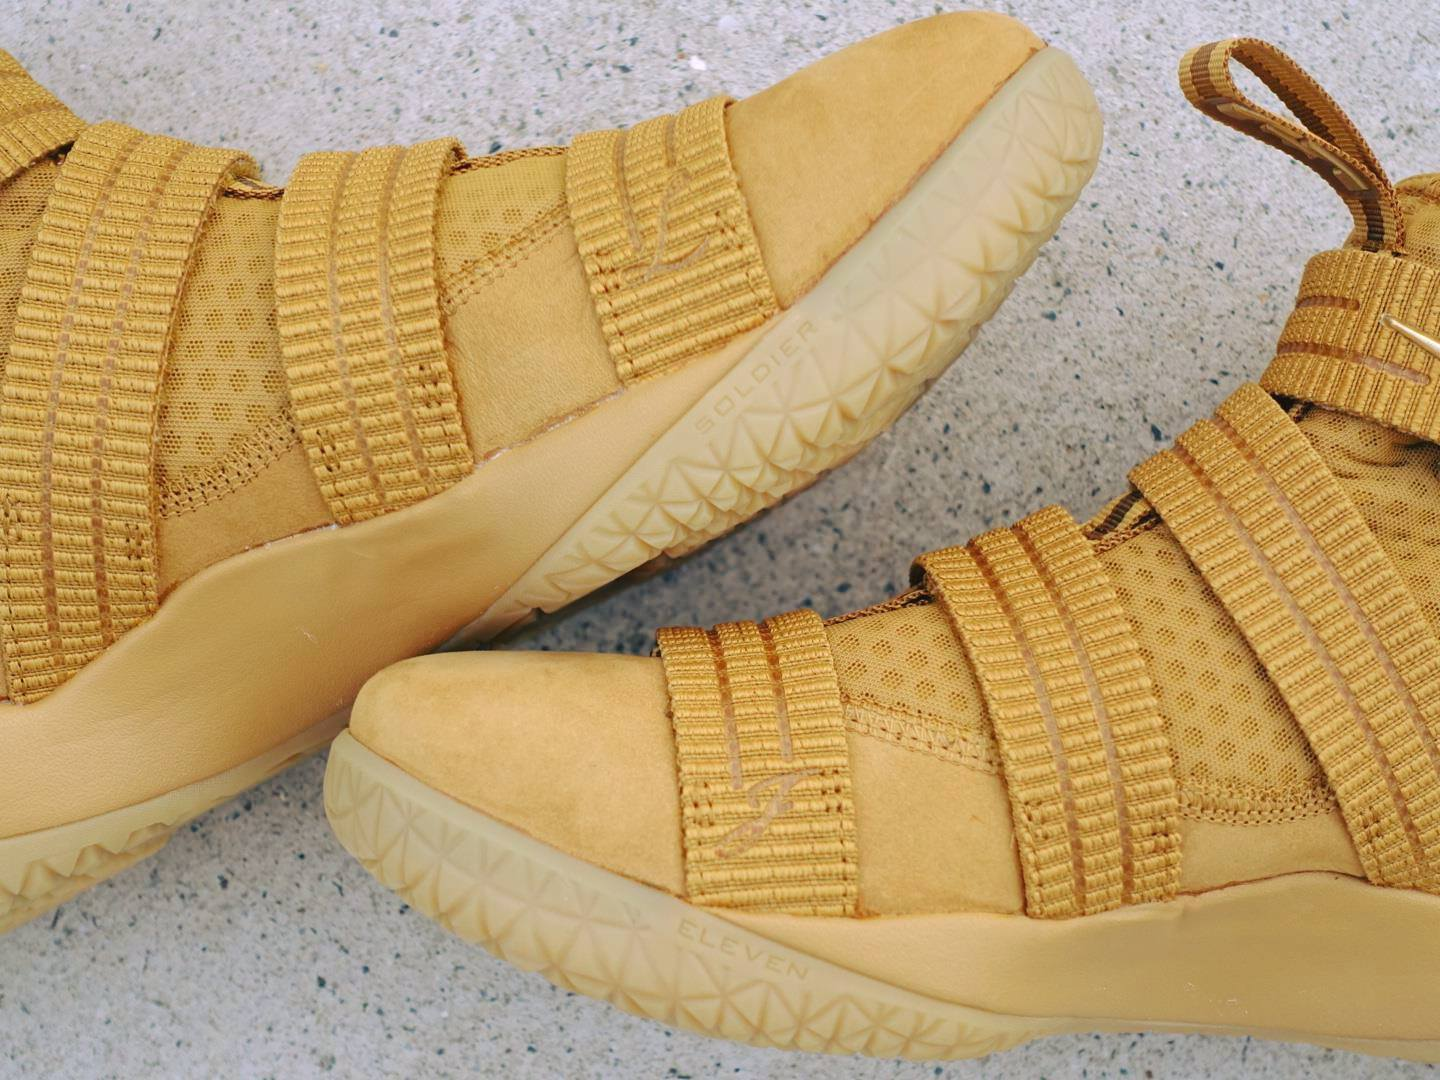 Nike LeBron Soldier 11 SFG Wheat Release Date 897647-700 (3)